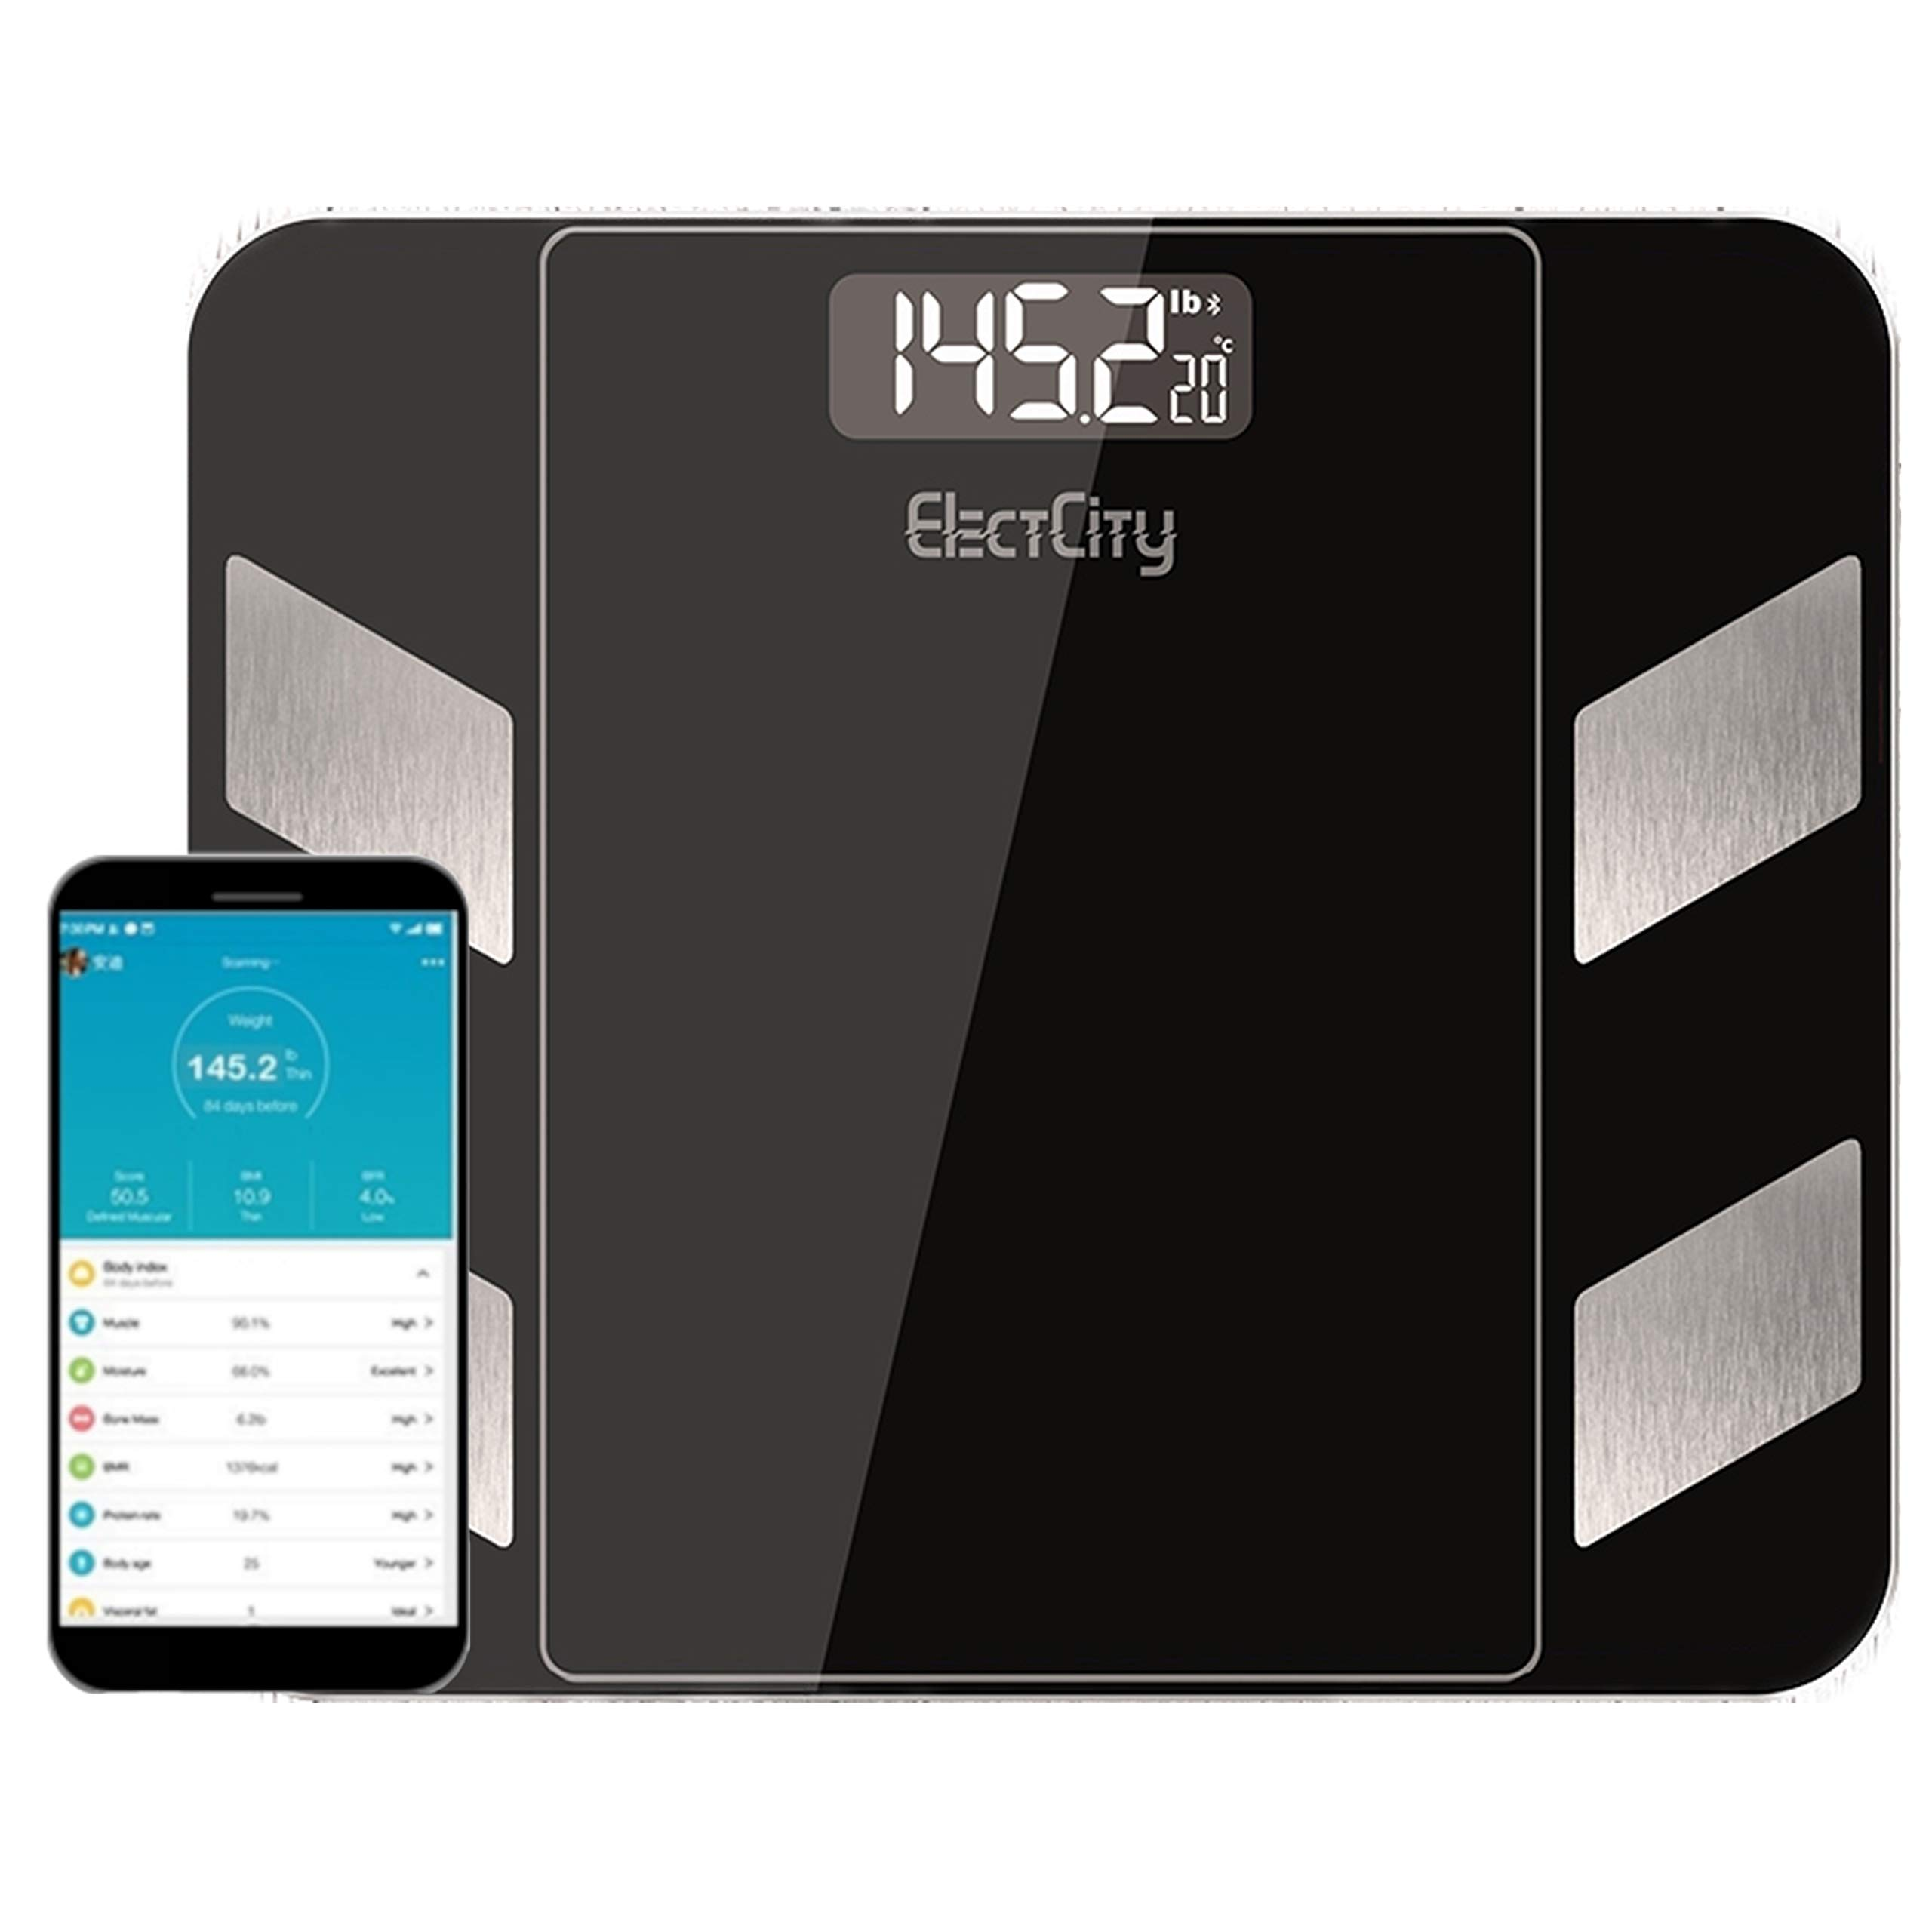 ElectCity Bluetooth Body Fat Scale Smart BMI Scale Digital Bathroom Weight Scale 18 Body Composition Analyzer Most Accurate Scale for Health and Fitness FDA Approved Free iOS and Android App 396 lbs